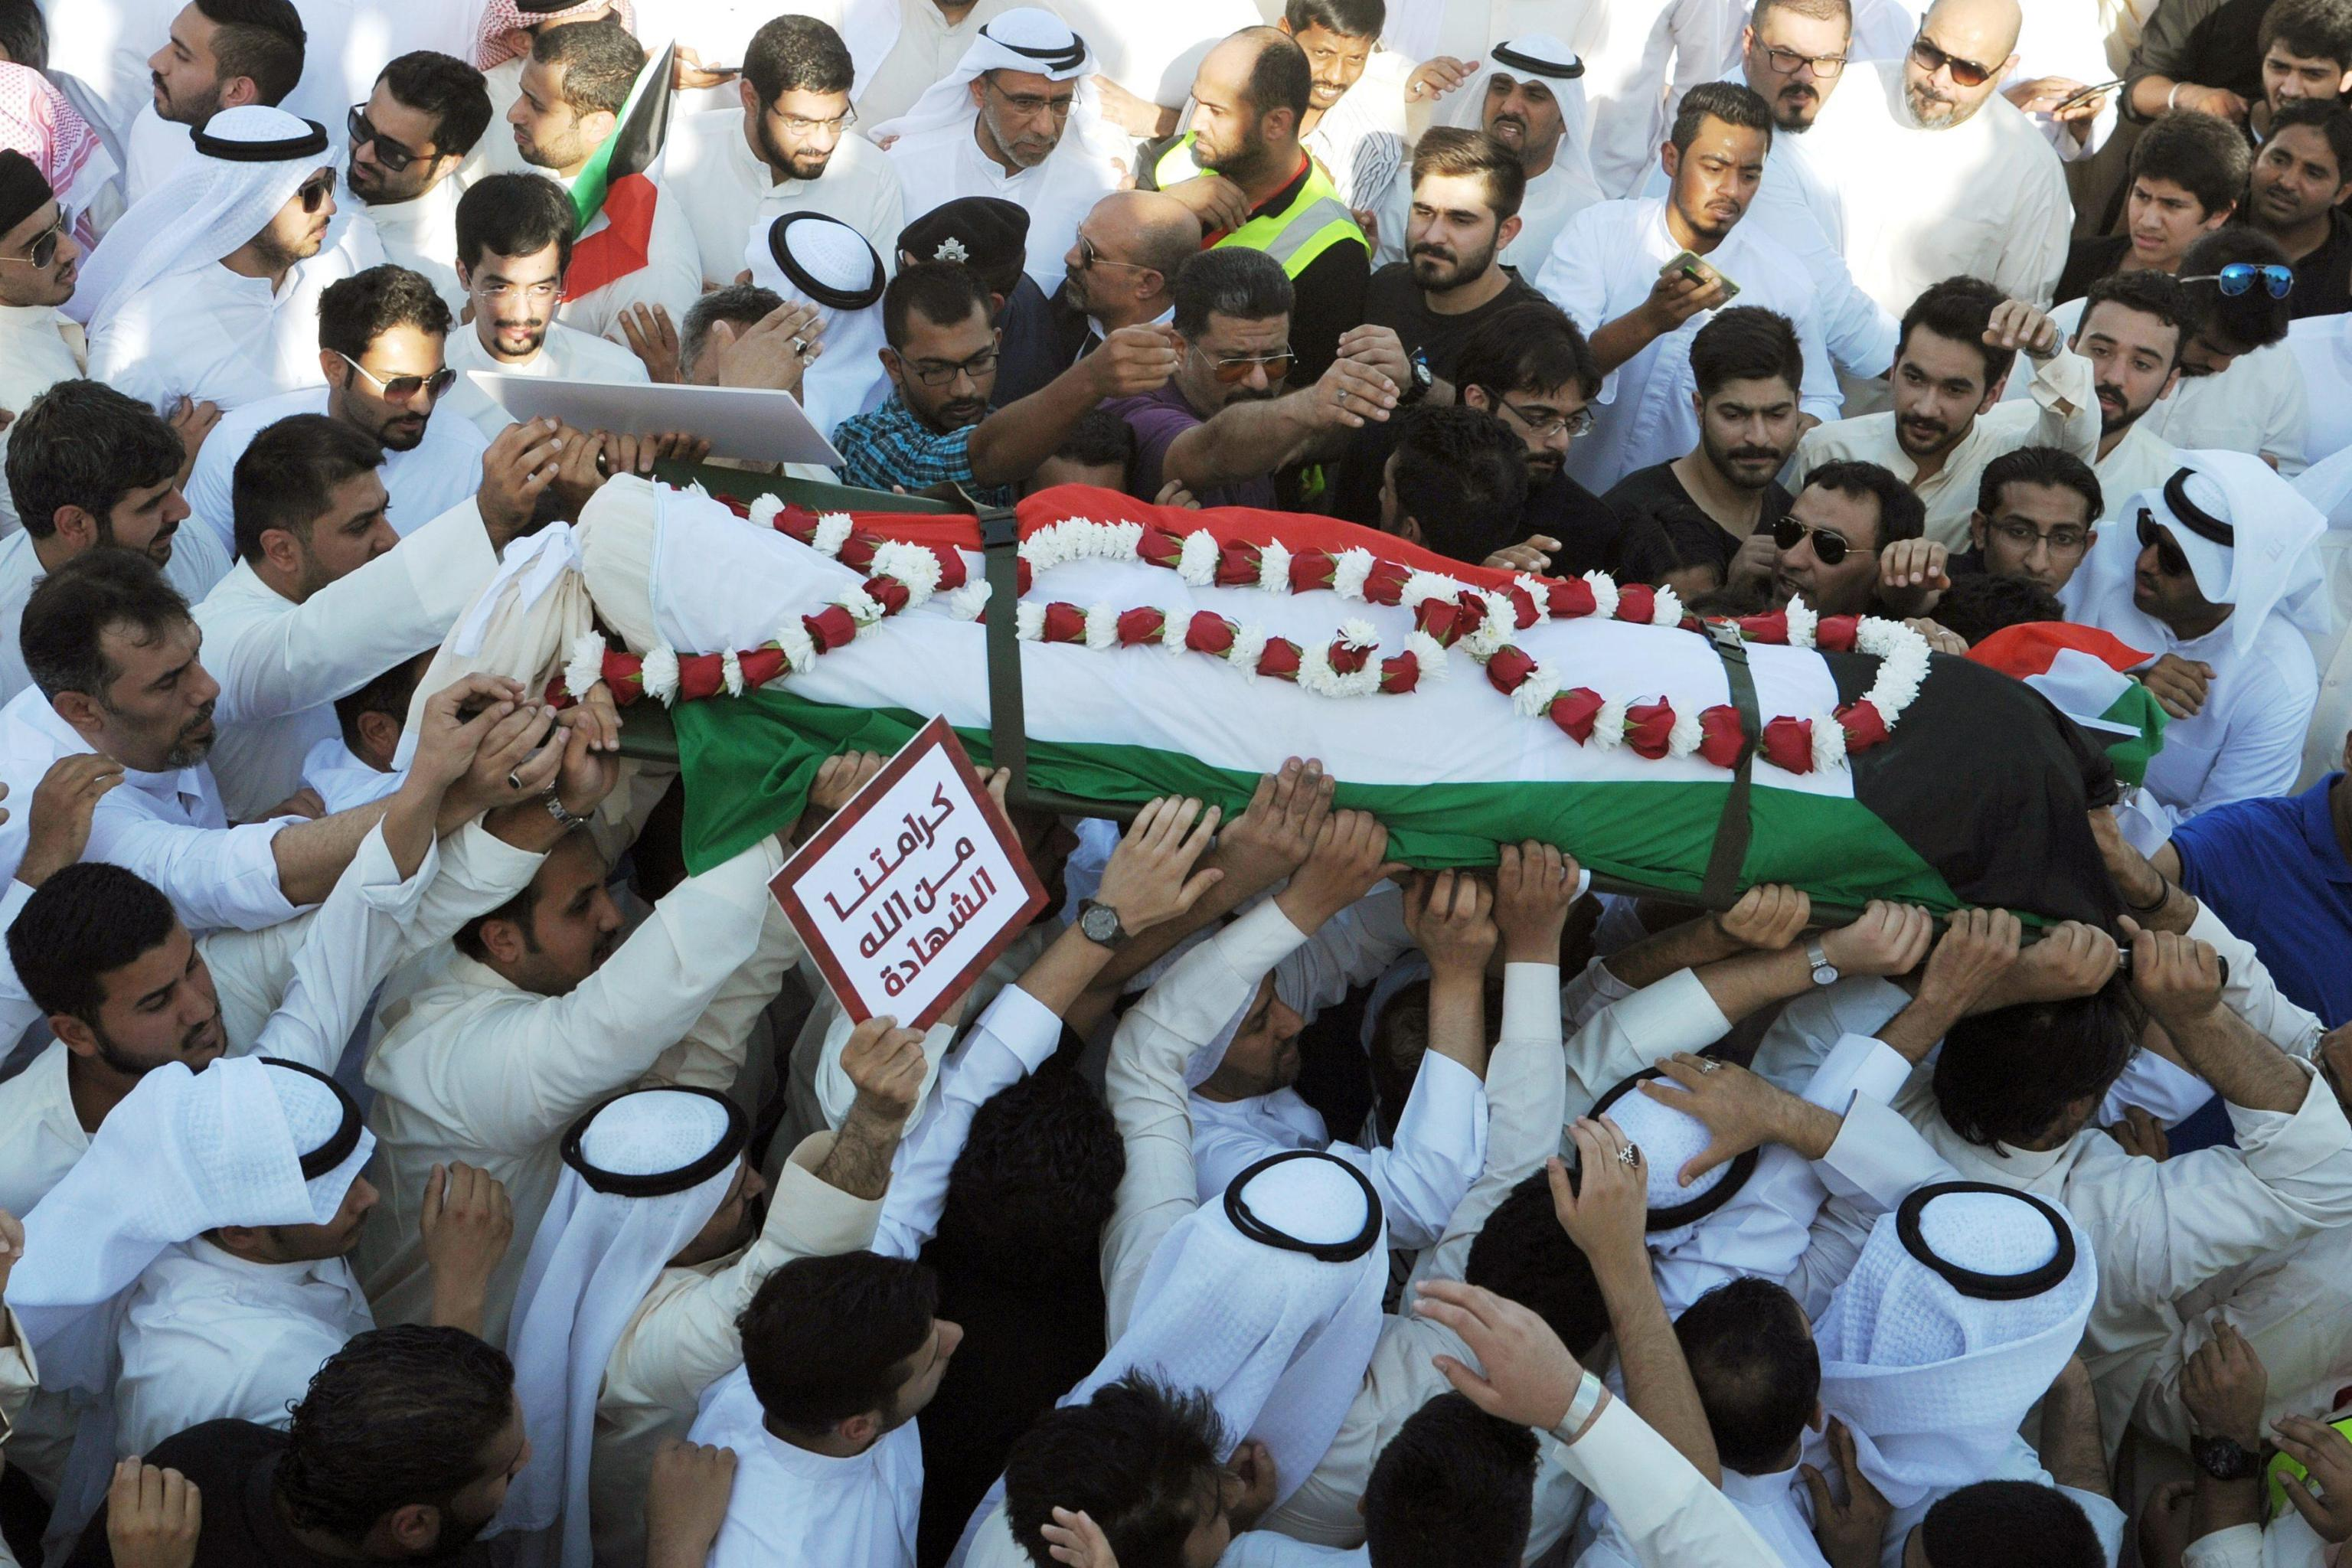 Funeral procession for victims of suicide bombing in a Shi'ite mosque in Kuwait City